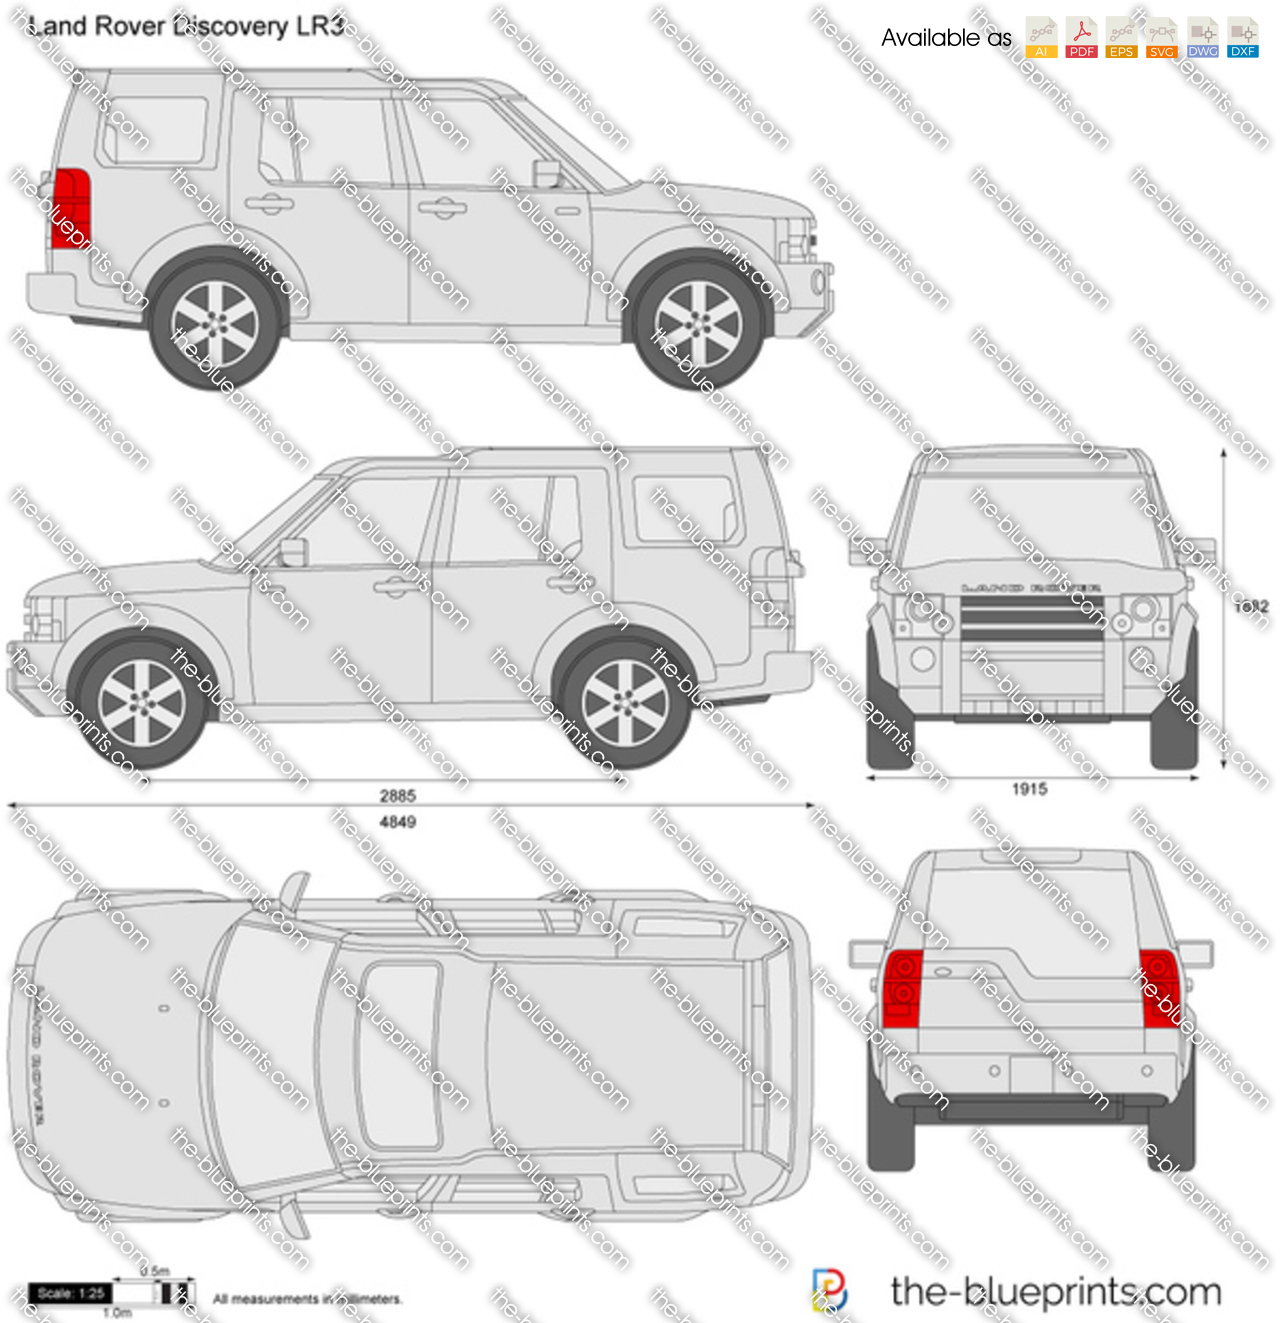 Land Rover Discovery LR3 Vector Drawing